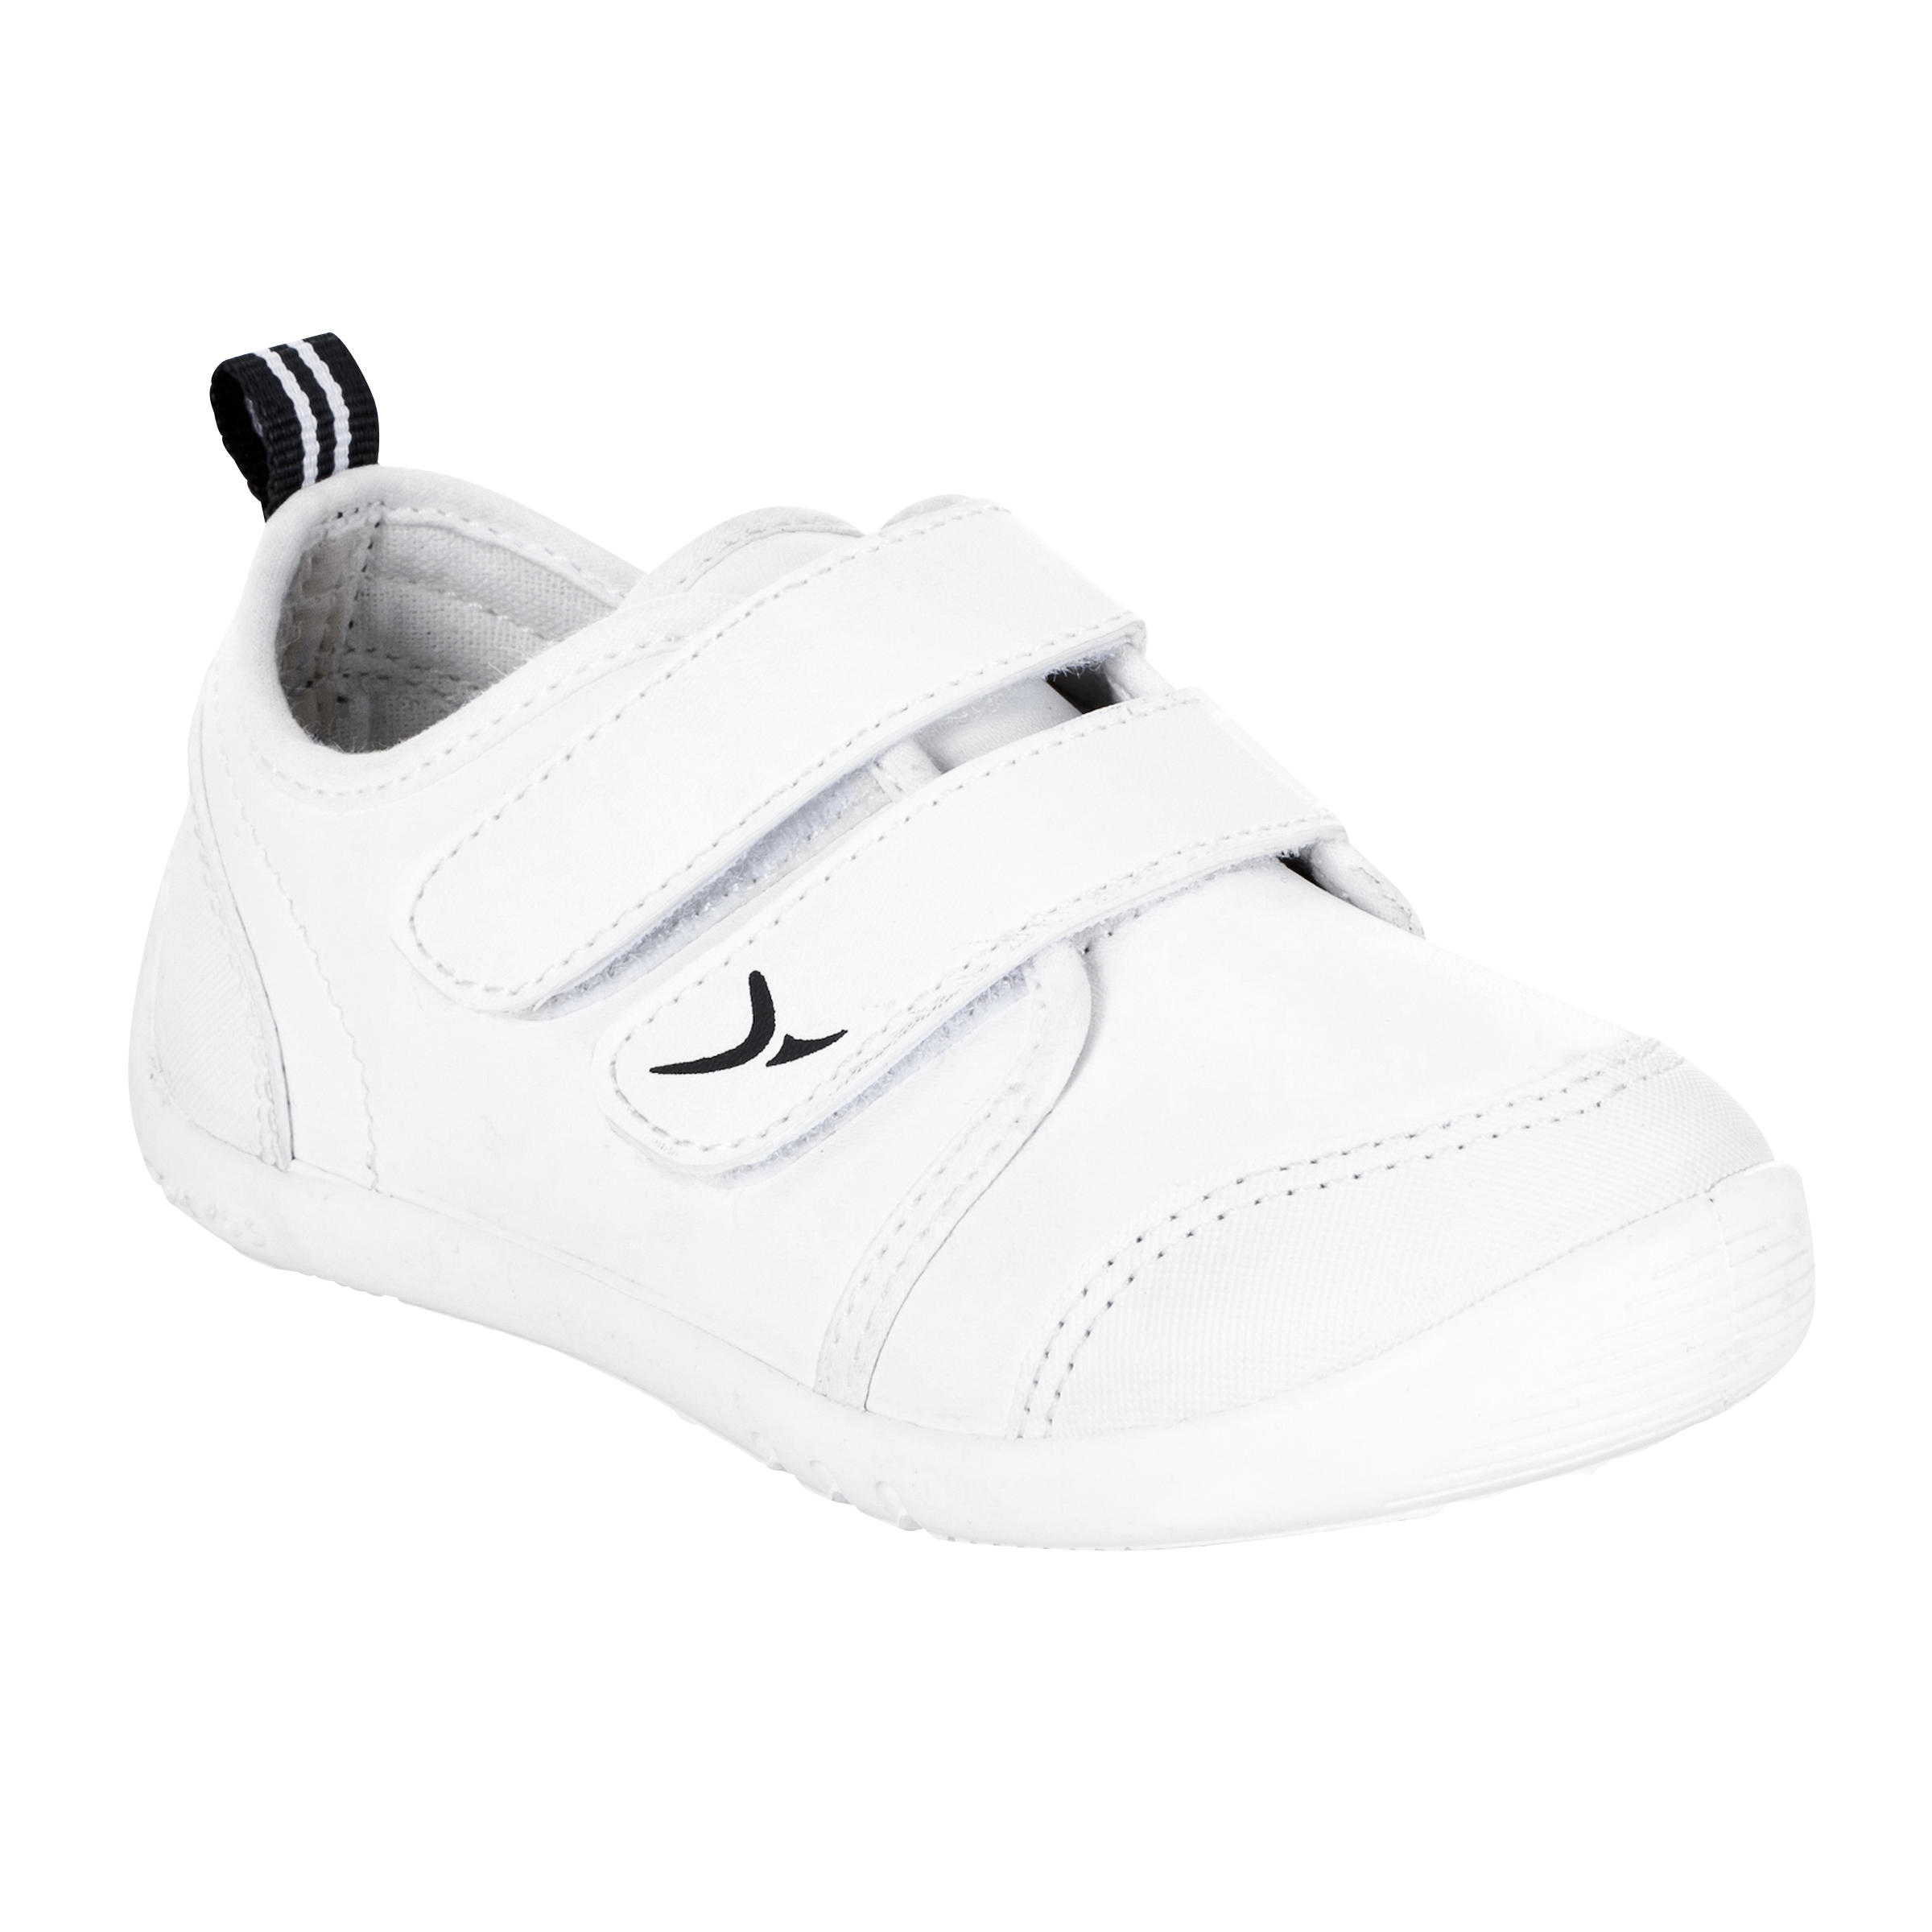 Babygymschoentjes My First Shoes wit